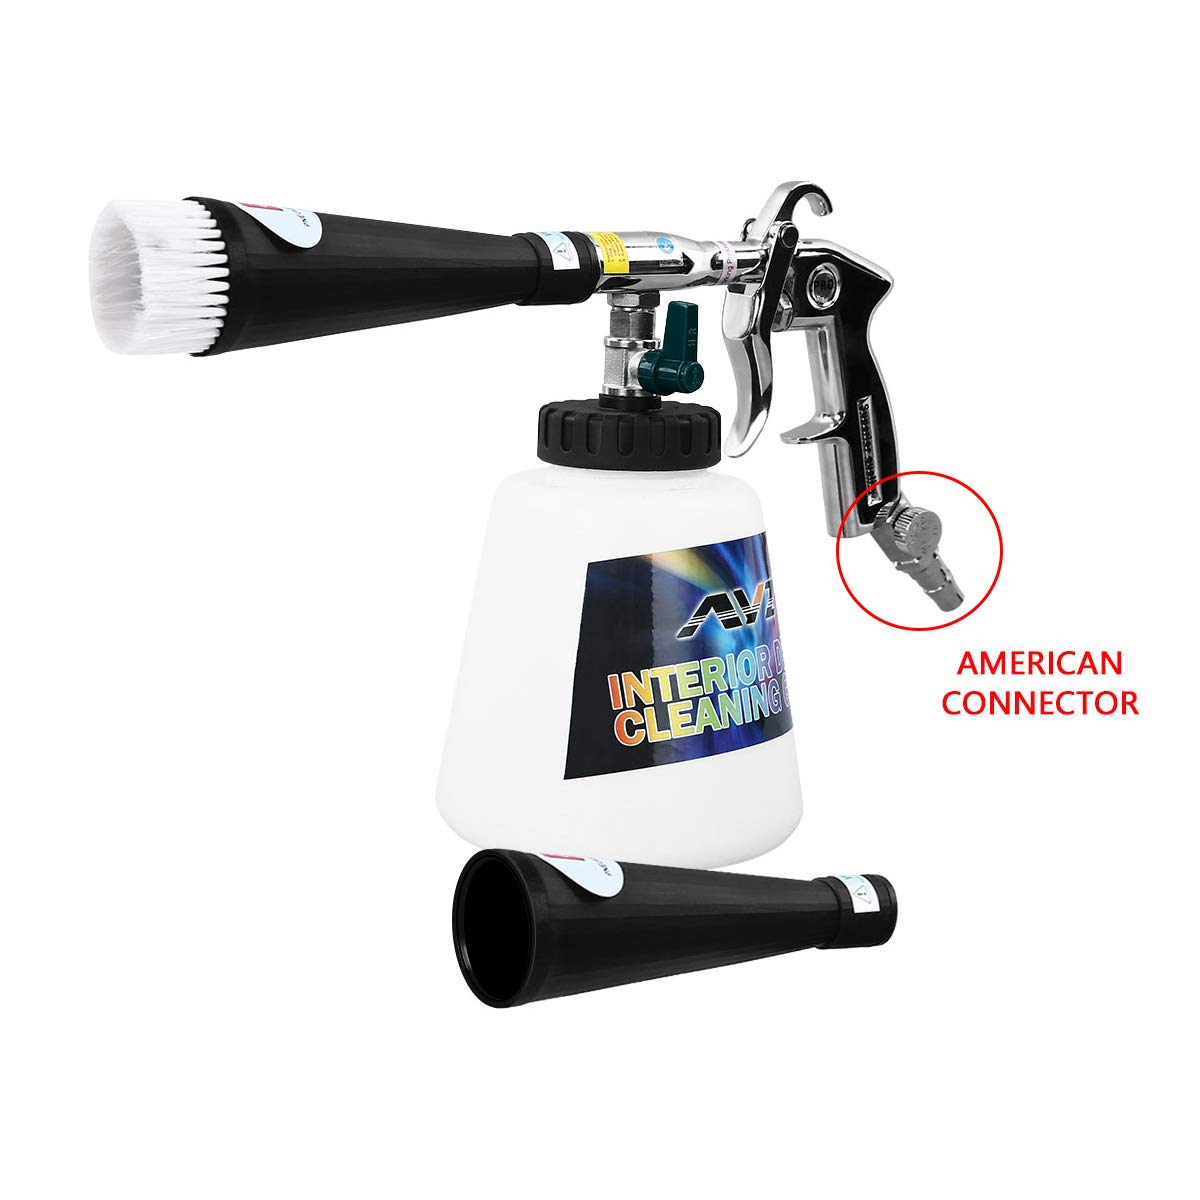 YVO Car Cleaning Gun Automotive Interior Pneumatic Clean Washing Blowing Dust Gun with 1000ml Foam Bottle Car Maintenance Tools Equipment (Upgraded Version Metal Nozzle with US Connector)